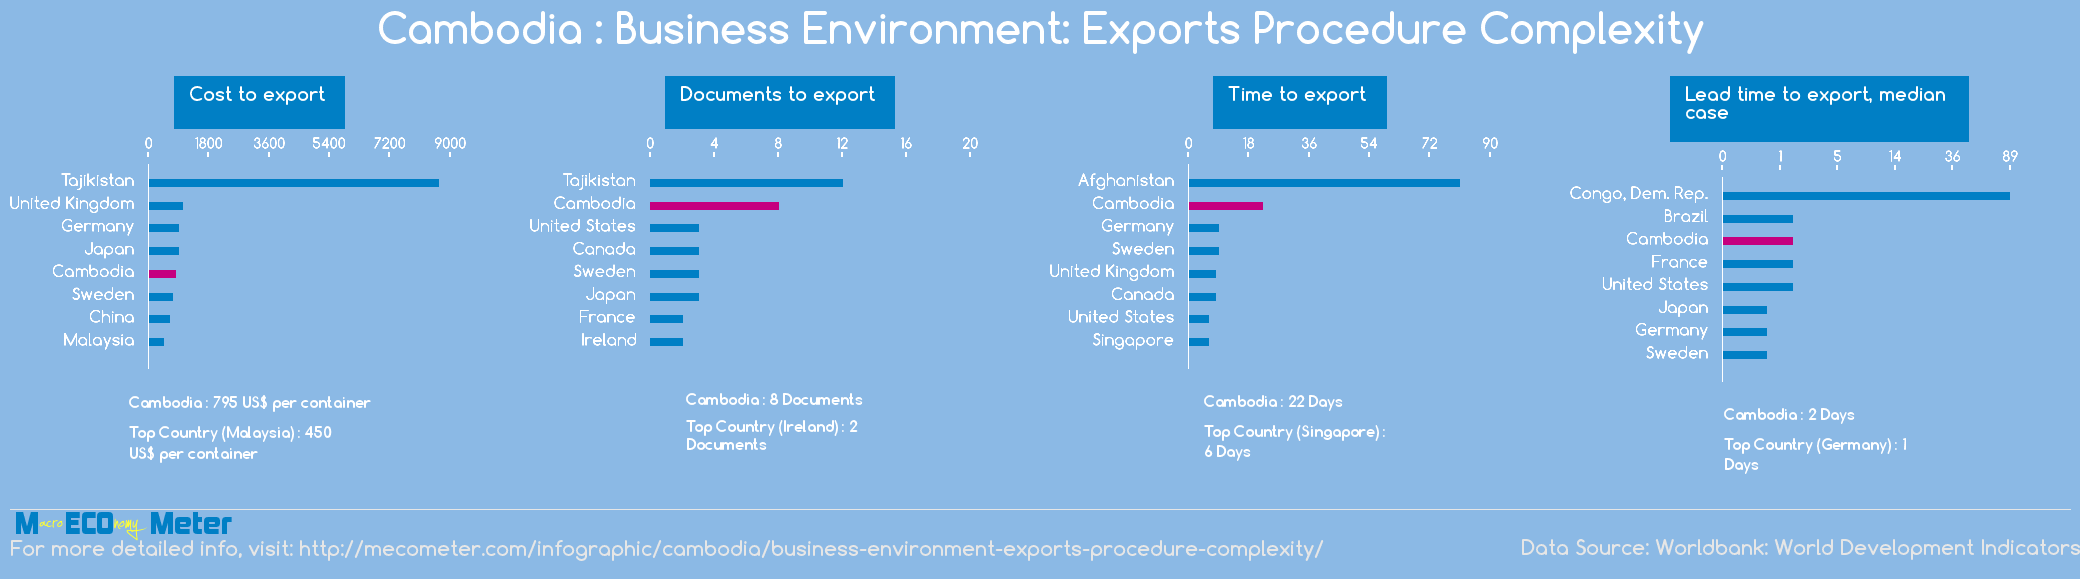 Cambodia : Business Environment: Exports Procedure Complexity